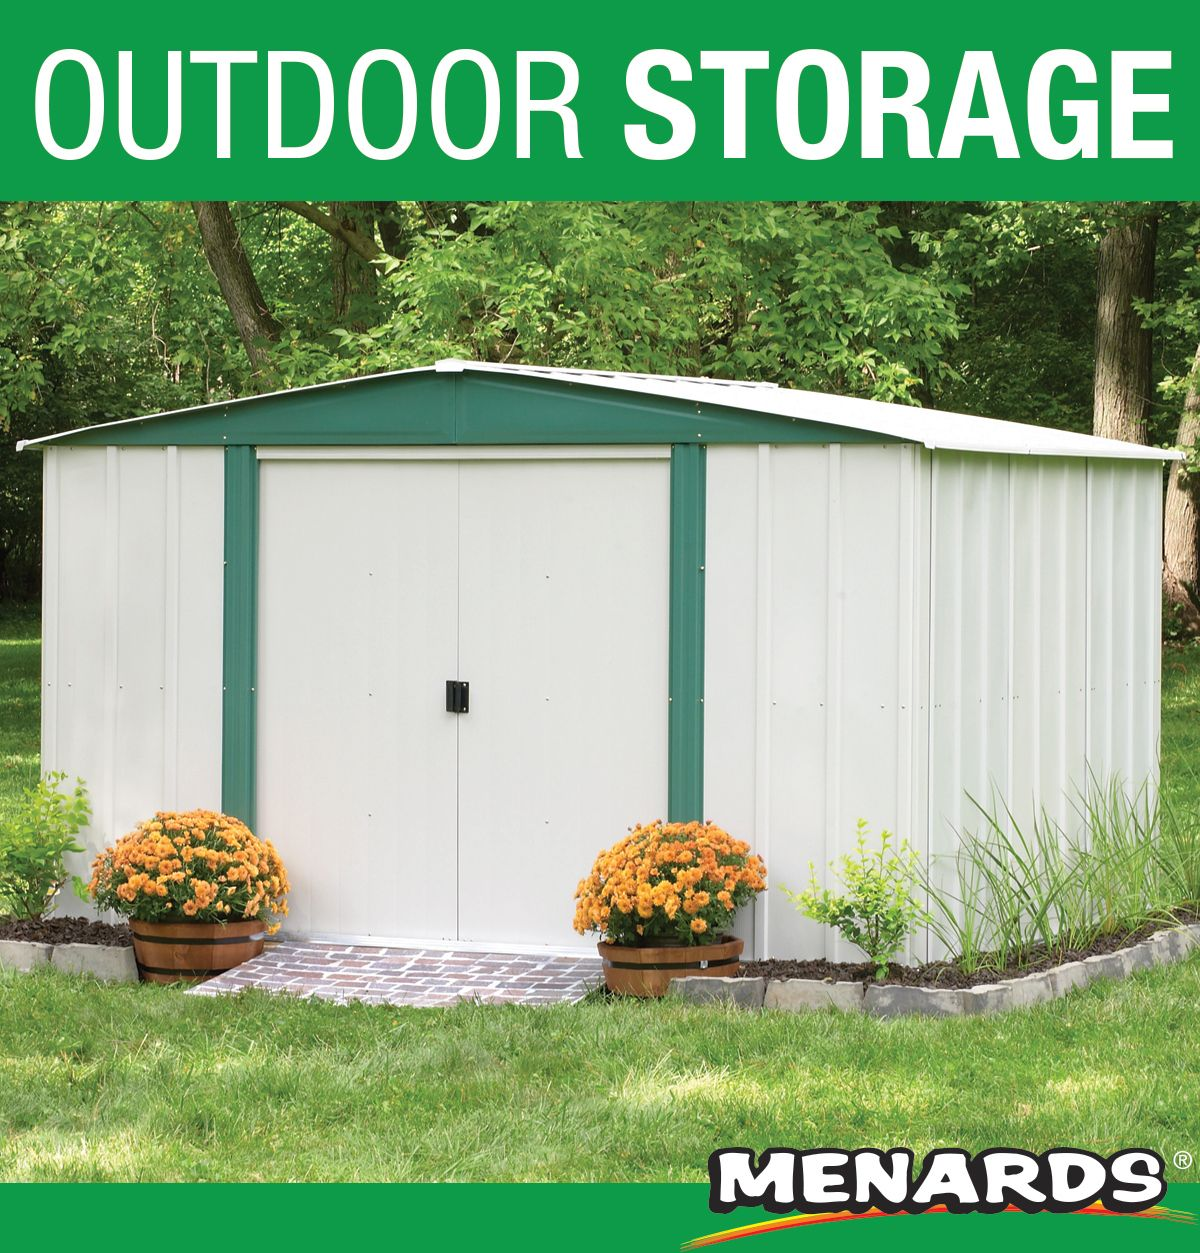 Traditional Gable Roof Styling Combines With Arrow Design And Engineering Features To Make The Hamlet Tops In Eco In 2020 Lawn And Garden Garden Equipment Steel Sheds